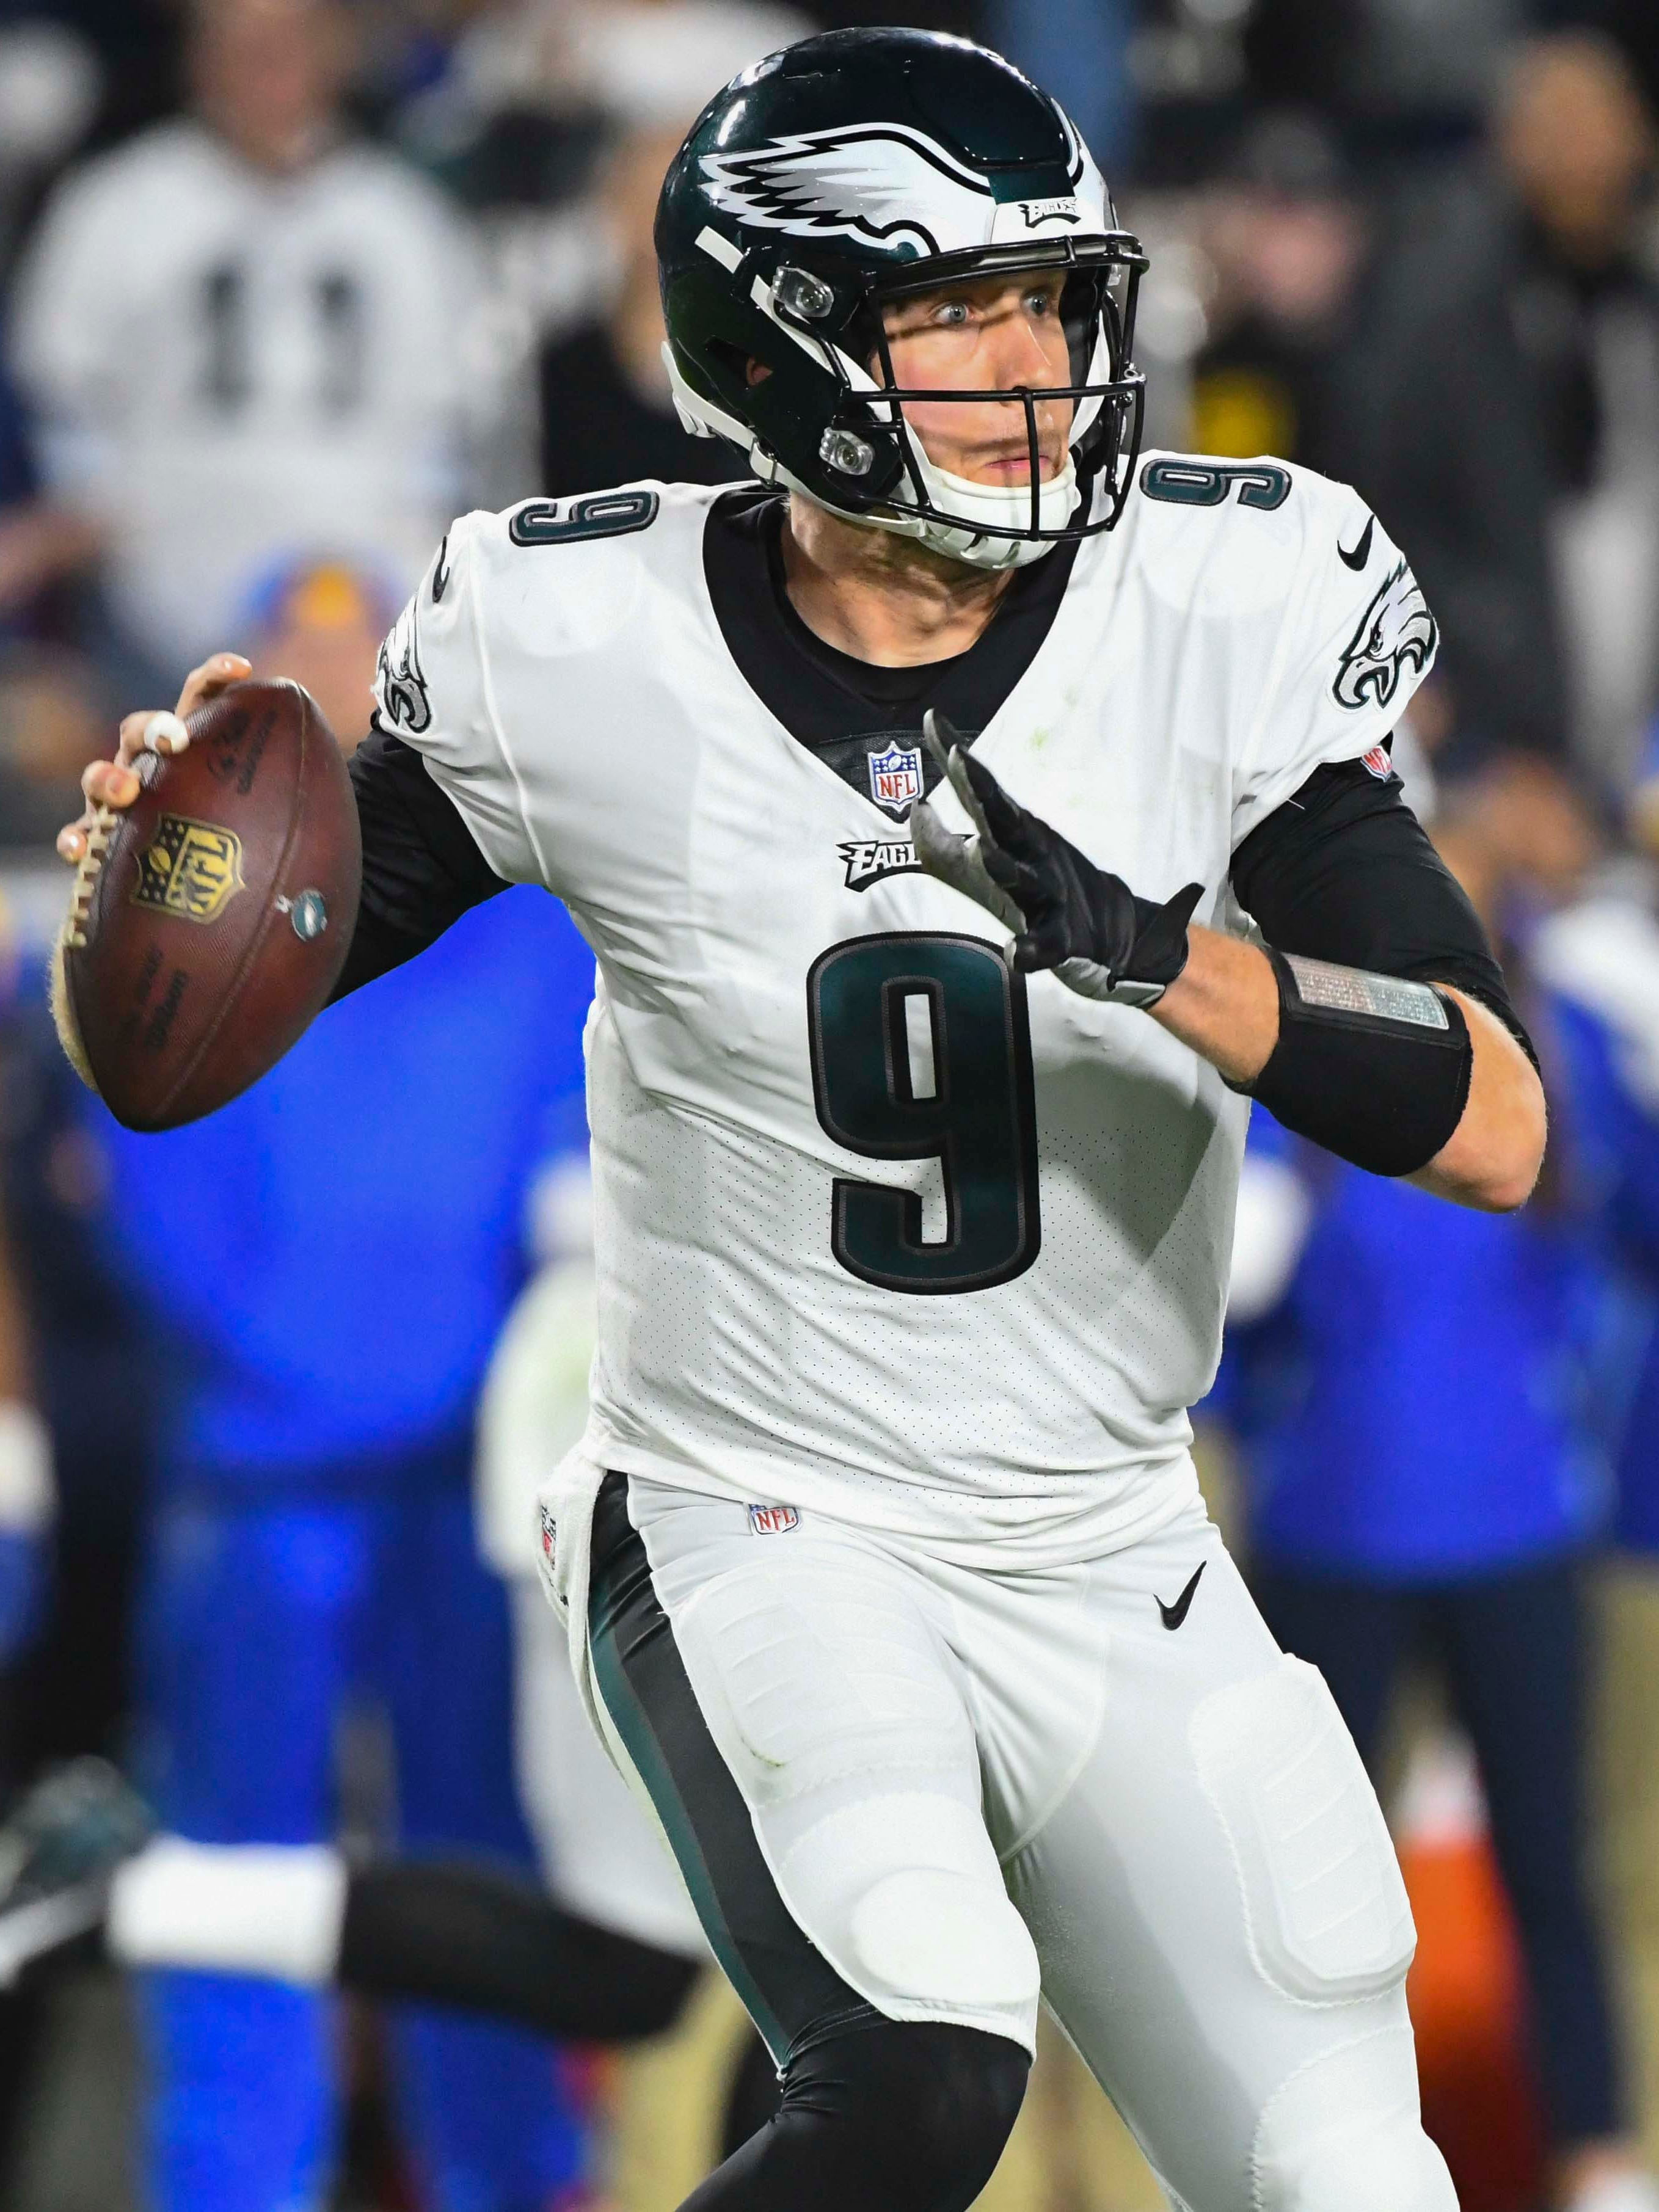 Eagles quarterback Nick Foles rolls out to avoid the pass rush against the Rams.